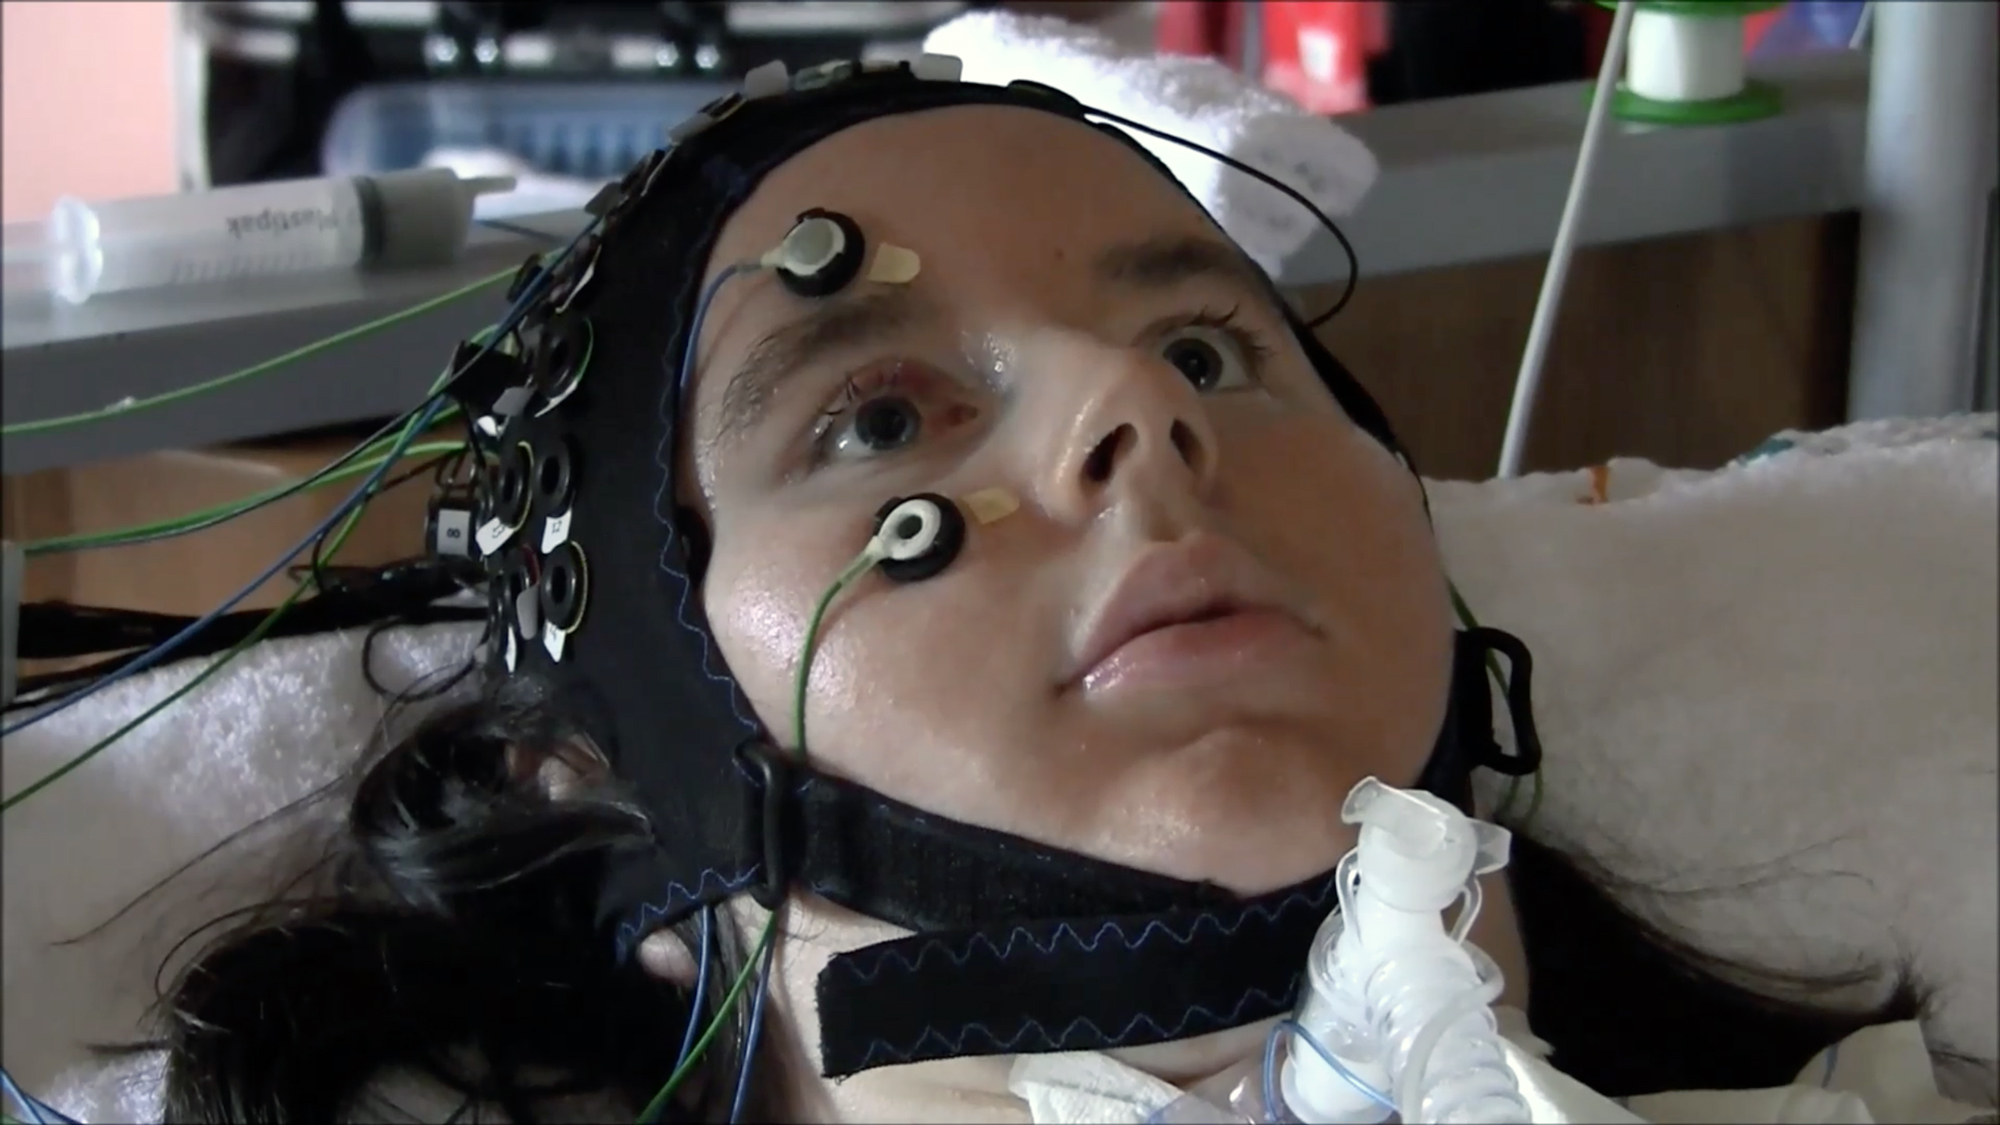 Reached Via a Mind-Reading Device, Deeply Paralyzed Patients Say They Want to Live